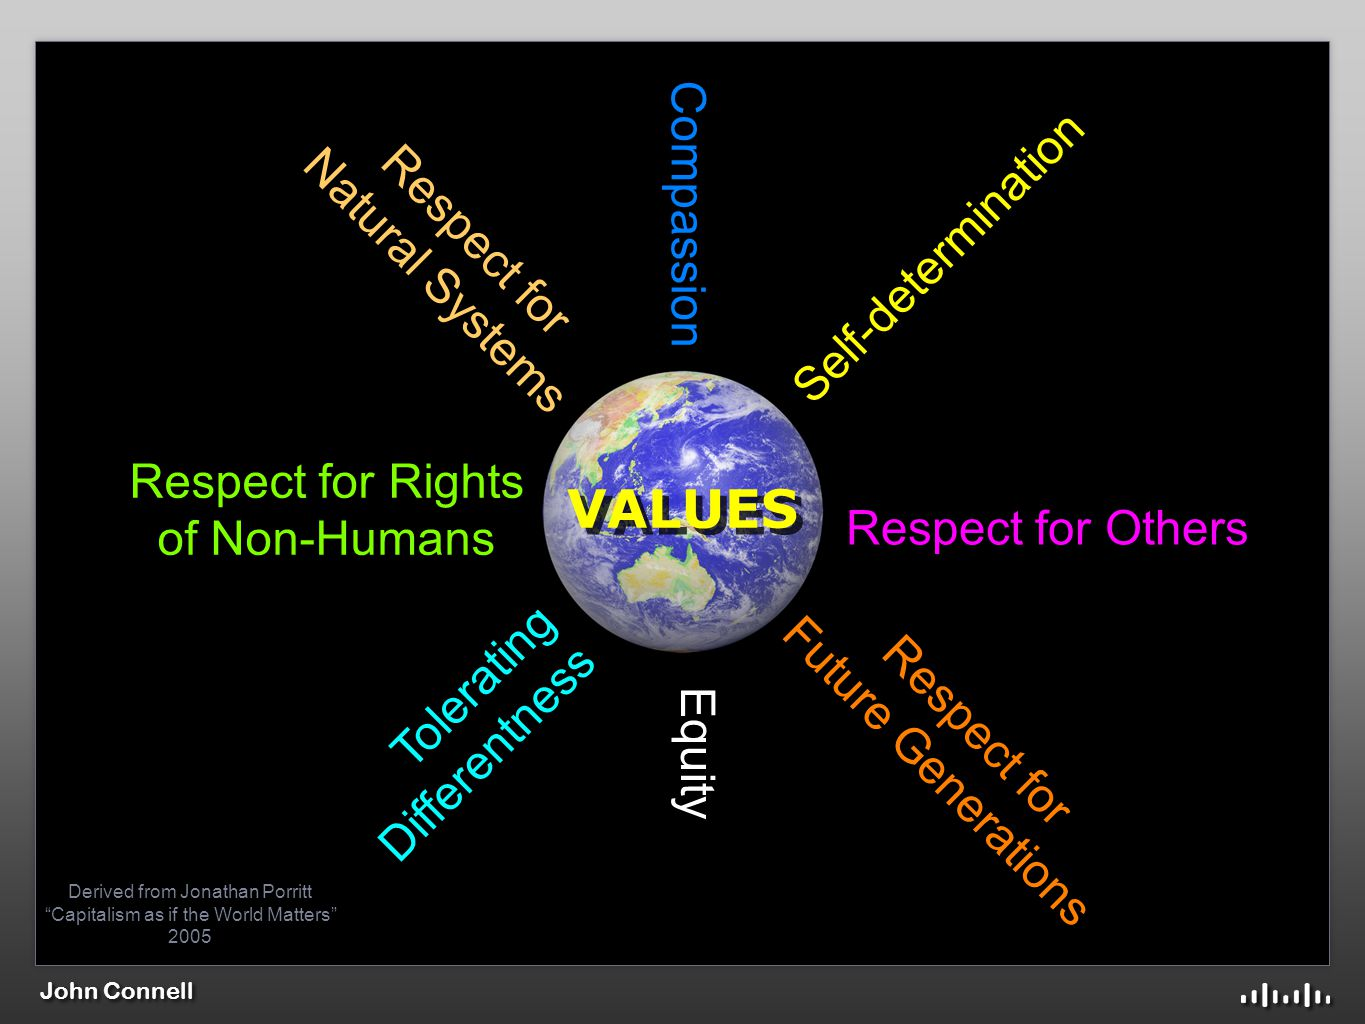 John Connell Respect for Others Tolerating Differentness Self-determination Compassion Equity Respect for Natural Systems Respect for Future Generations Respect for Rights of Non-Humans VALUES Derived from Jonathan Porritt Capitalism as if the World Matters 2005